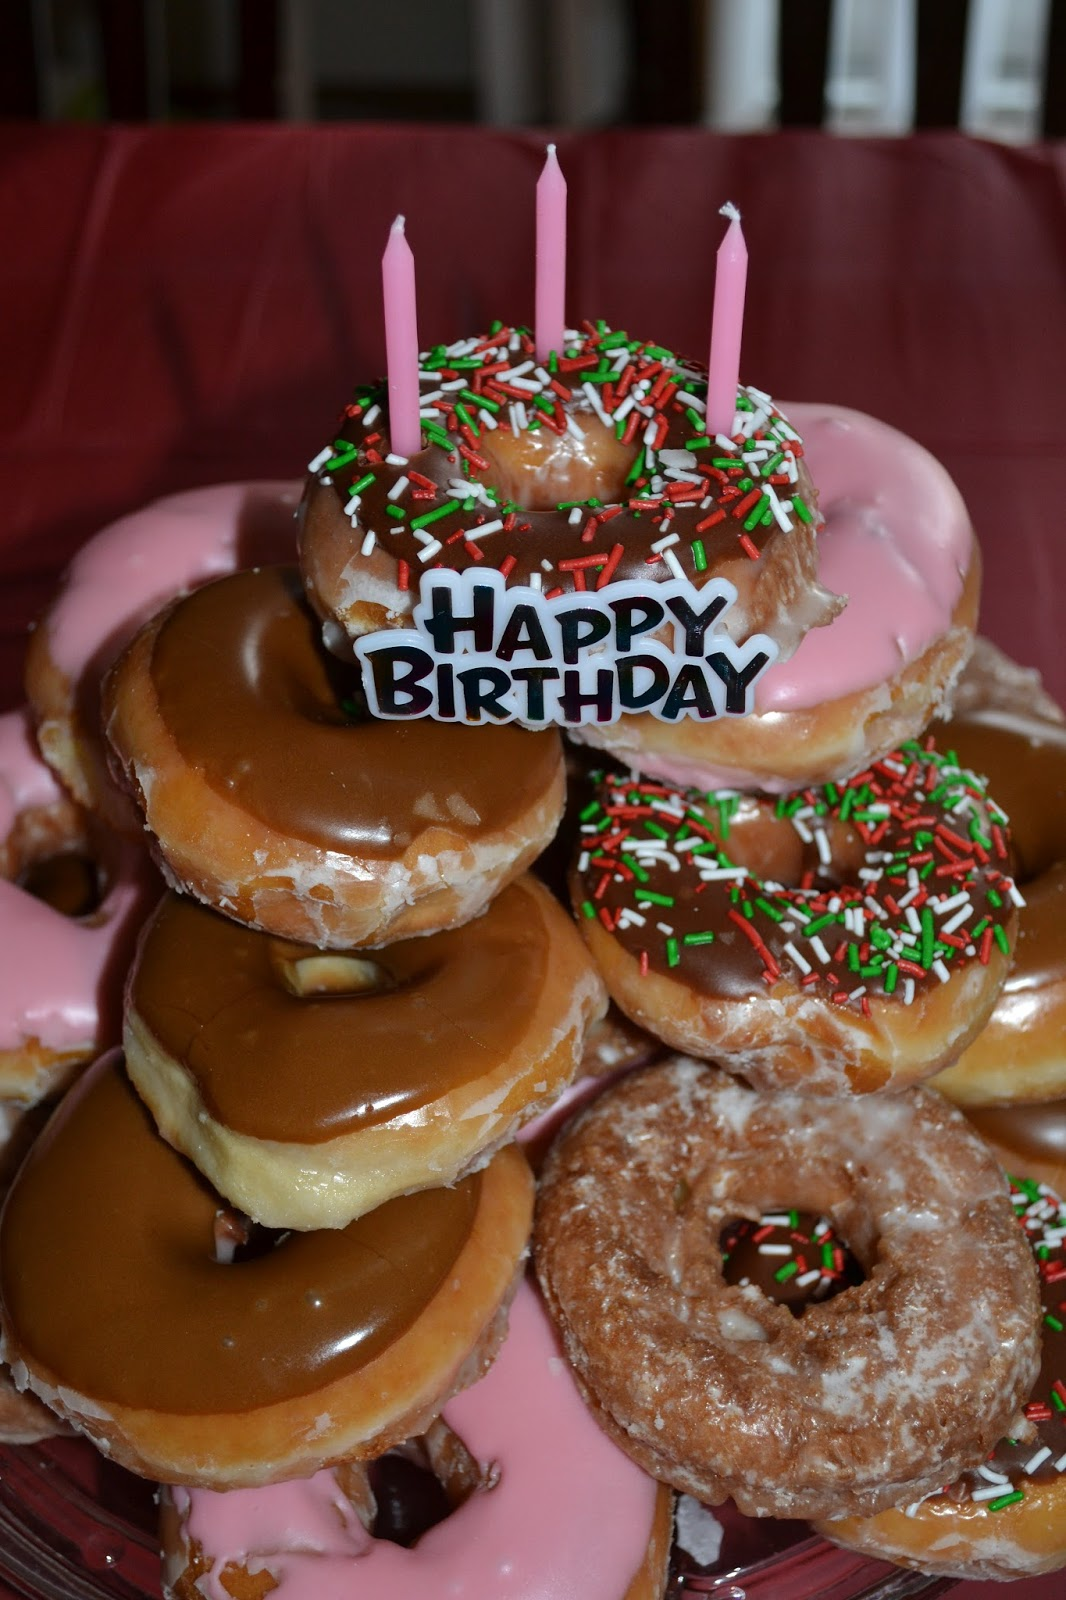 Money Saving Hack Forgo The Expensive Birthday Cake By Stacking Donuts Its Both Pretty And Costs A Fraction Of Price